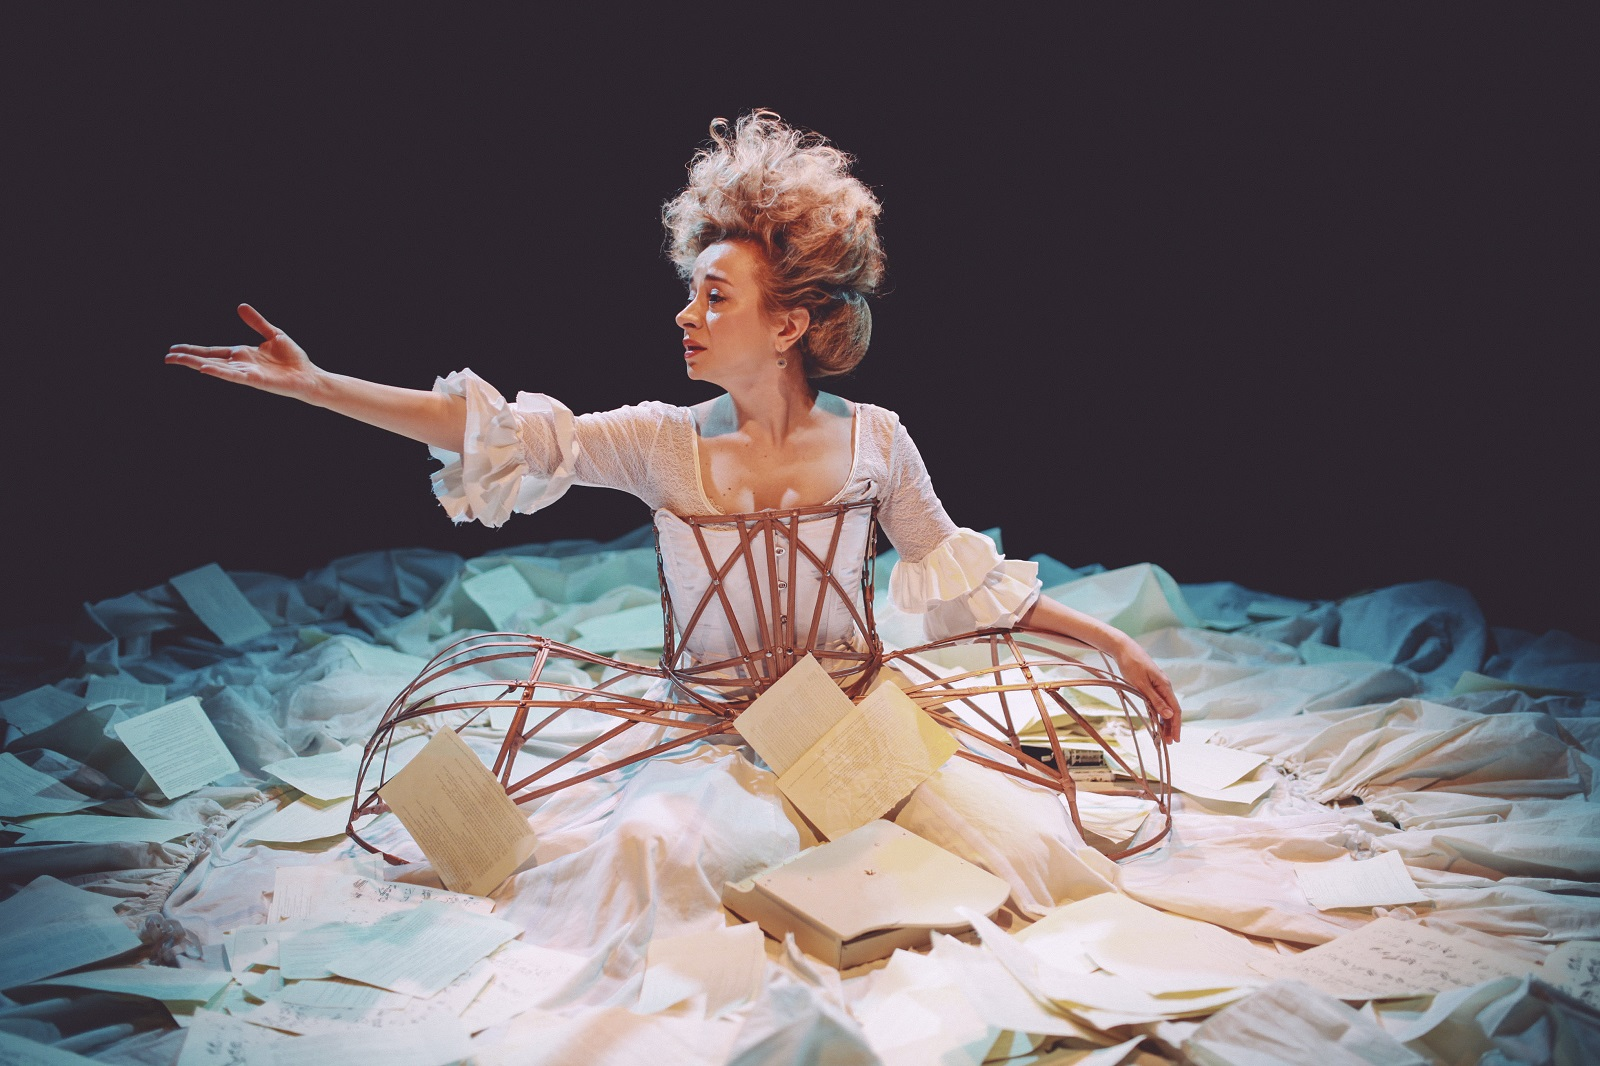 In 'The Other Mozart,' Sylvia Milo stars as Mozart's gifted older sister, Nannerl.